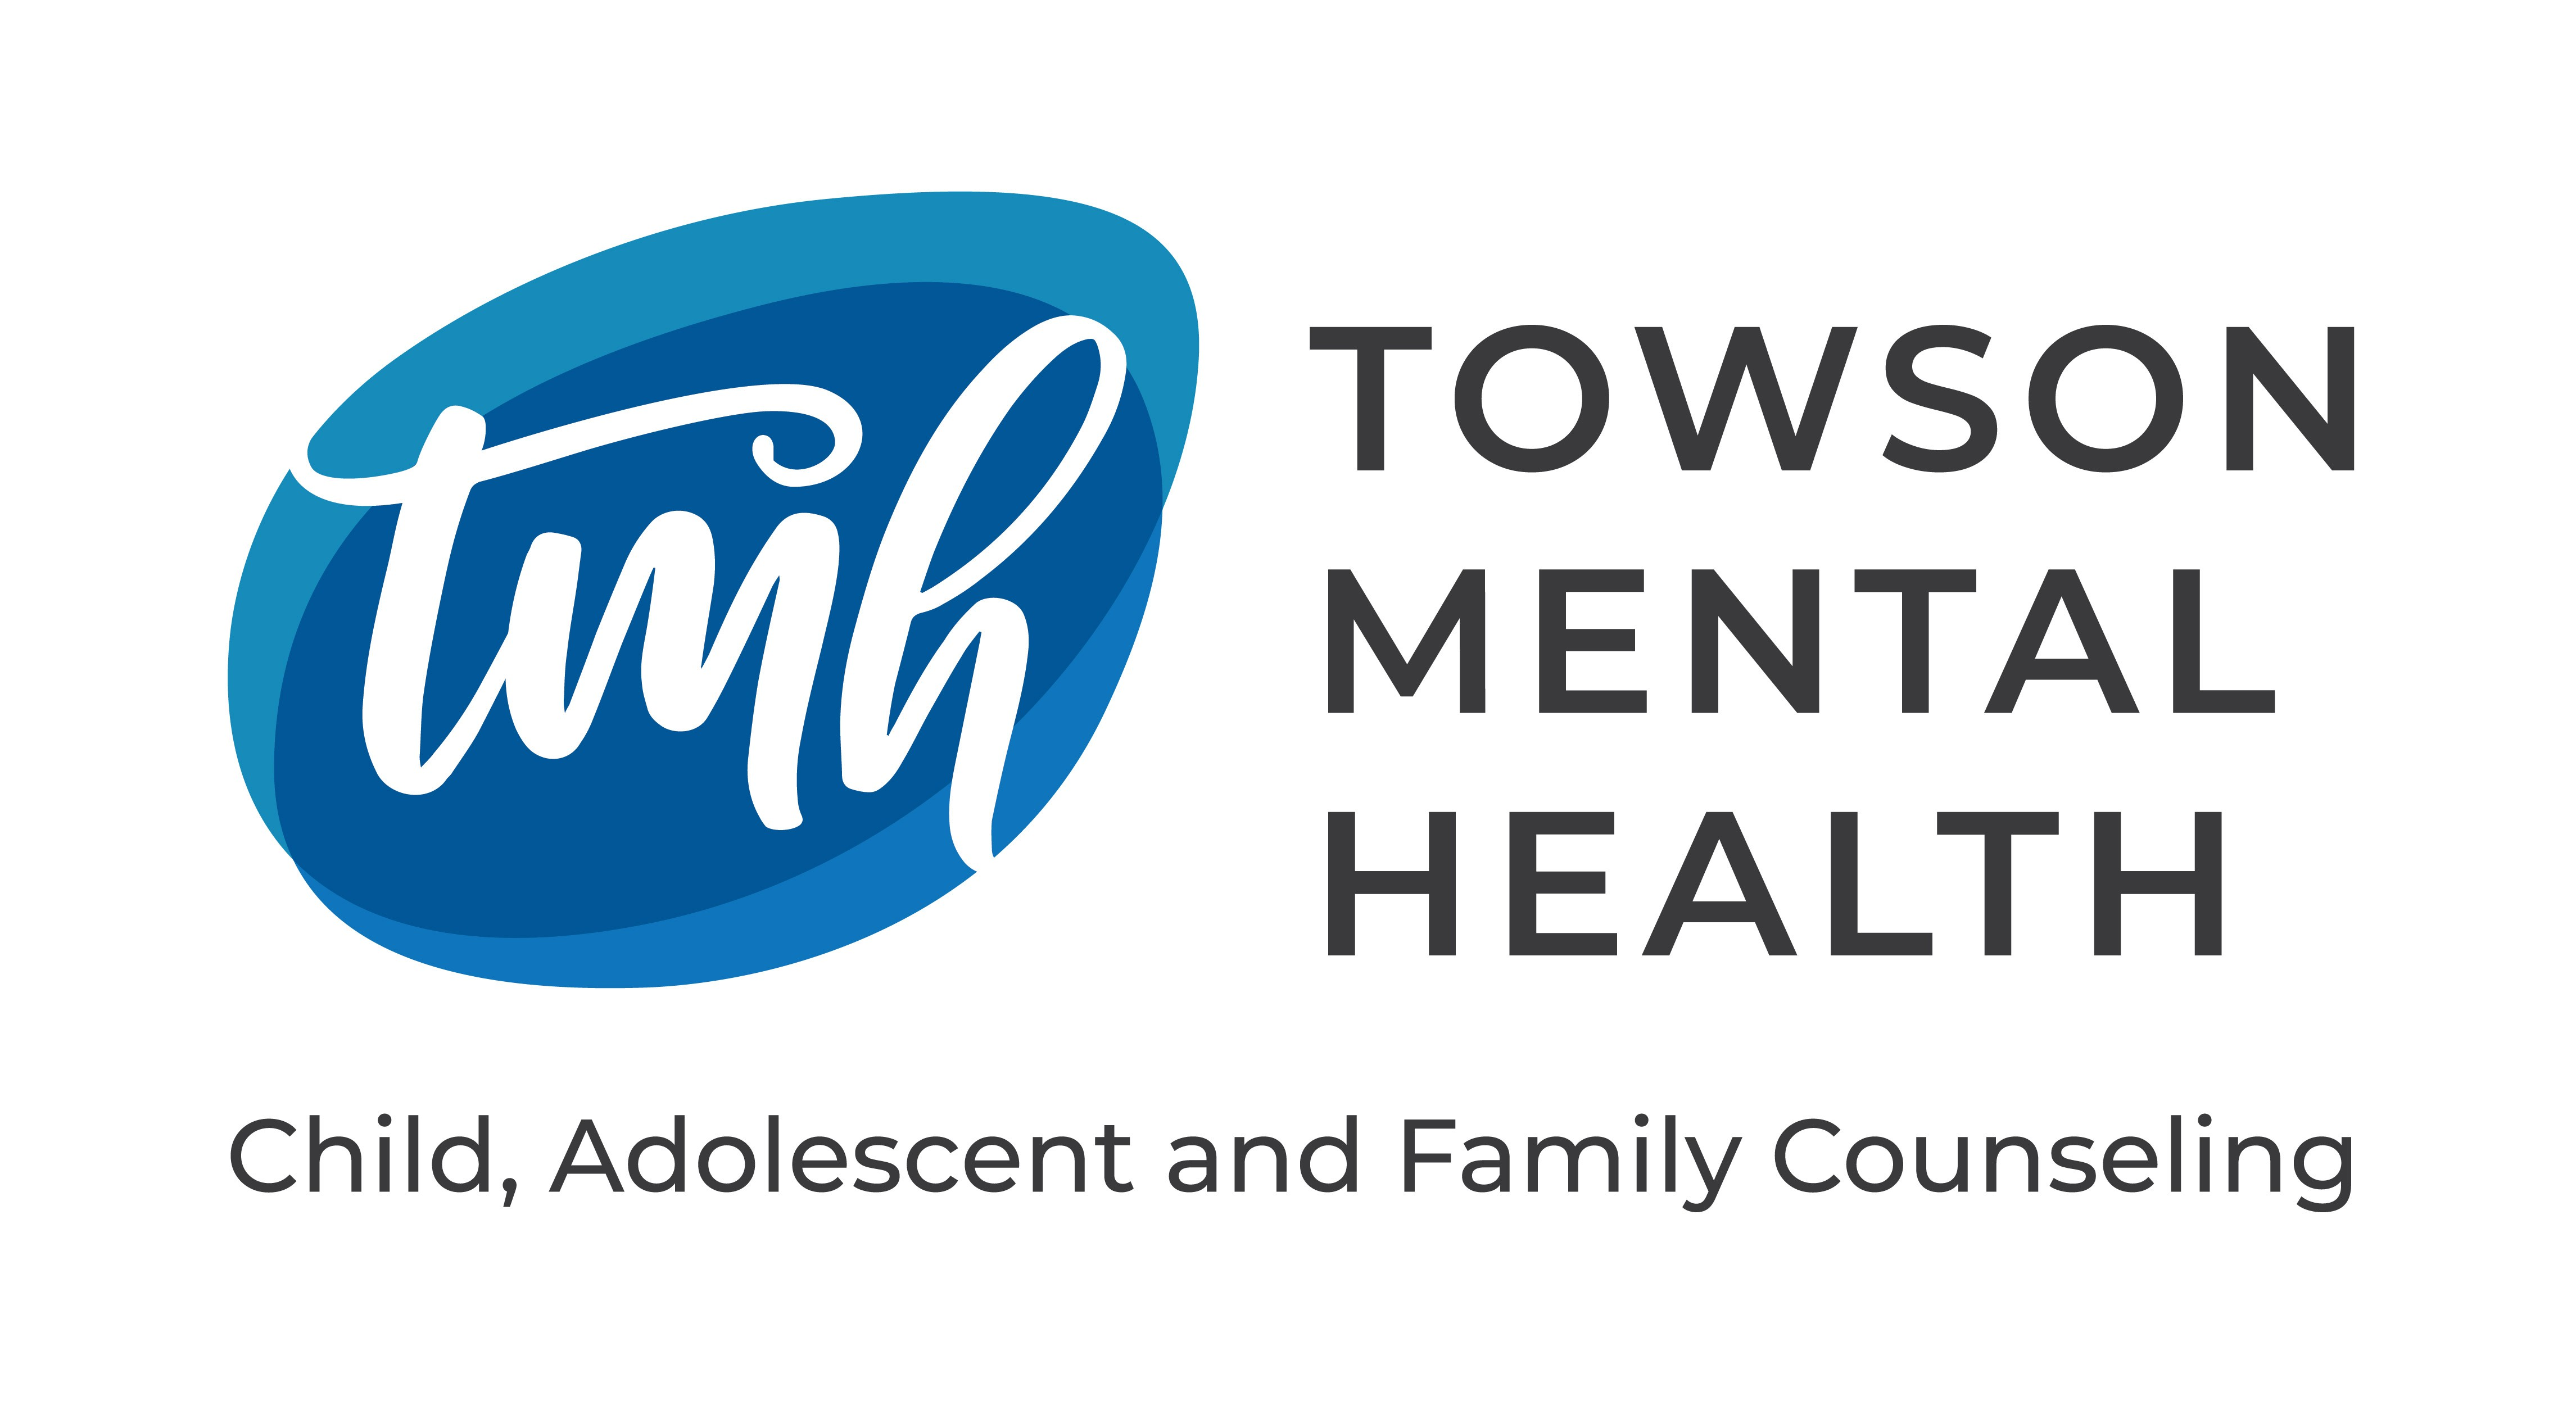 Mental Health office needs sleek and sophisticated logo